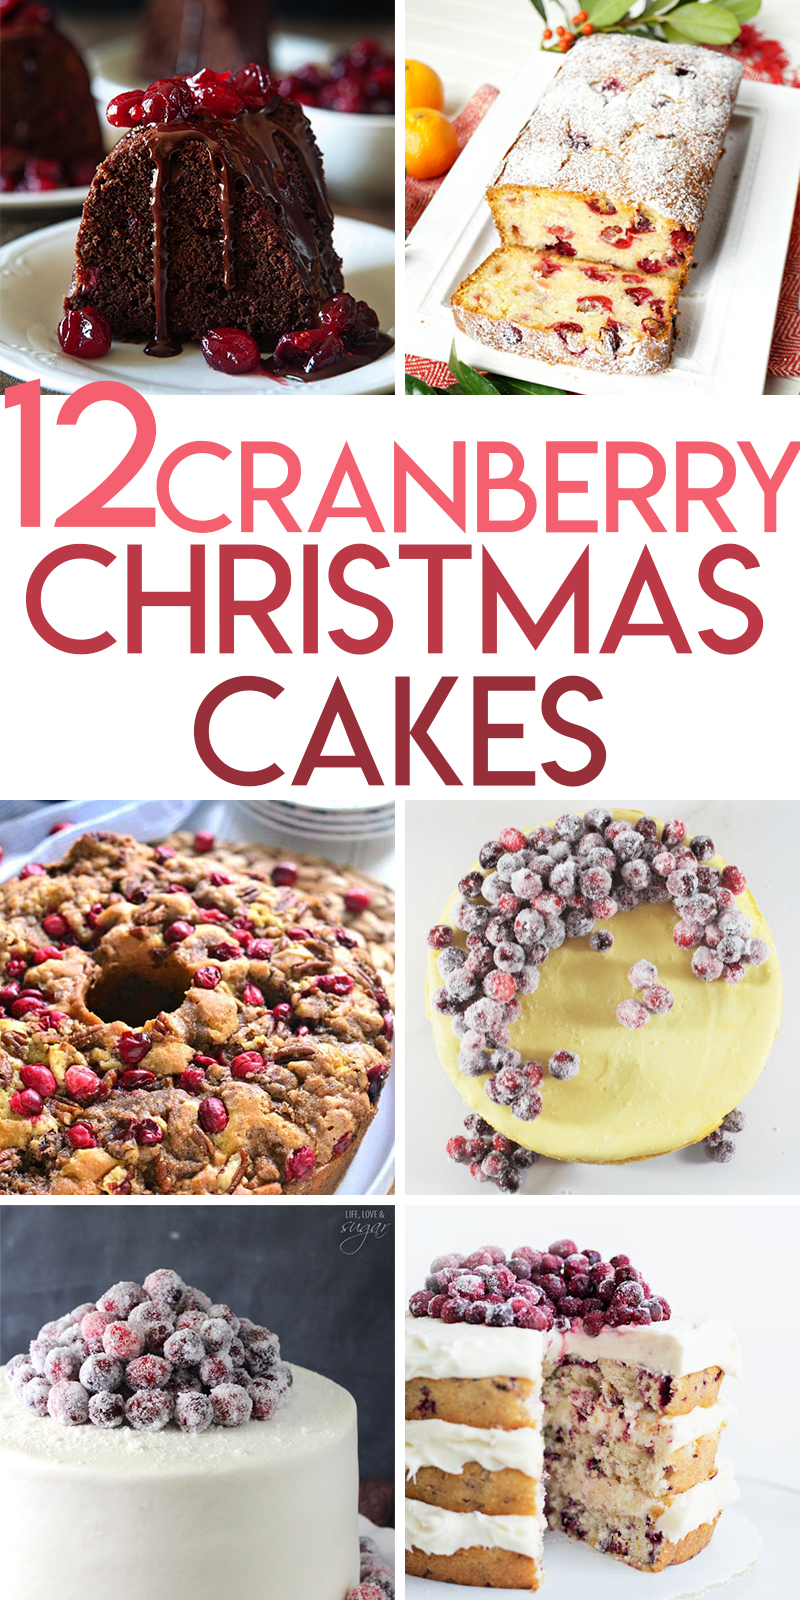 12 Cranberry Christmas Cakes to make for Christmas